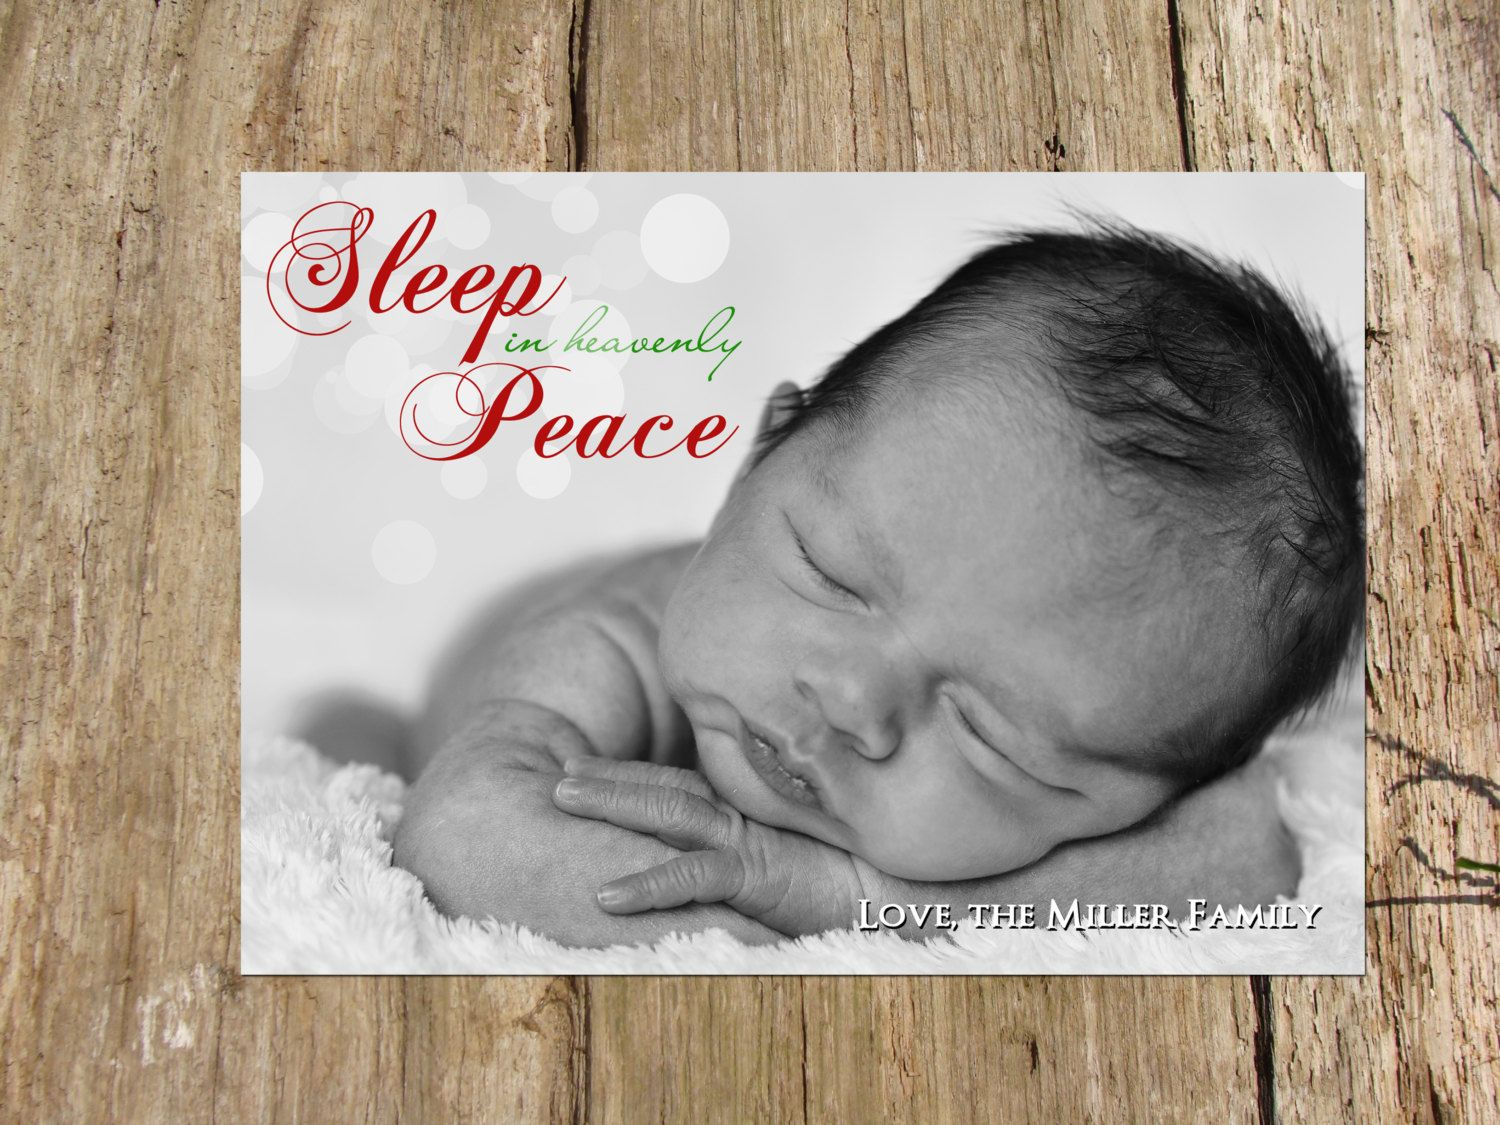 Christmas holiday photo greeting card sleep in heavenly peace by christmas holiday photo greeting card sleep in heavenly peace by rsvpinvitationsbyme on etsy kristyandbryce Image collections